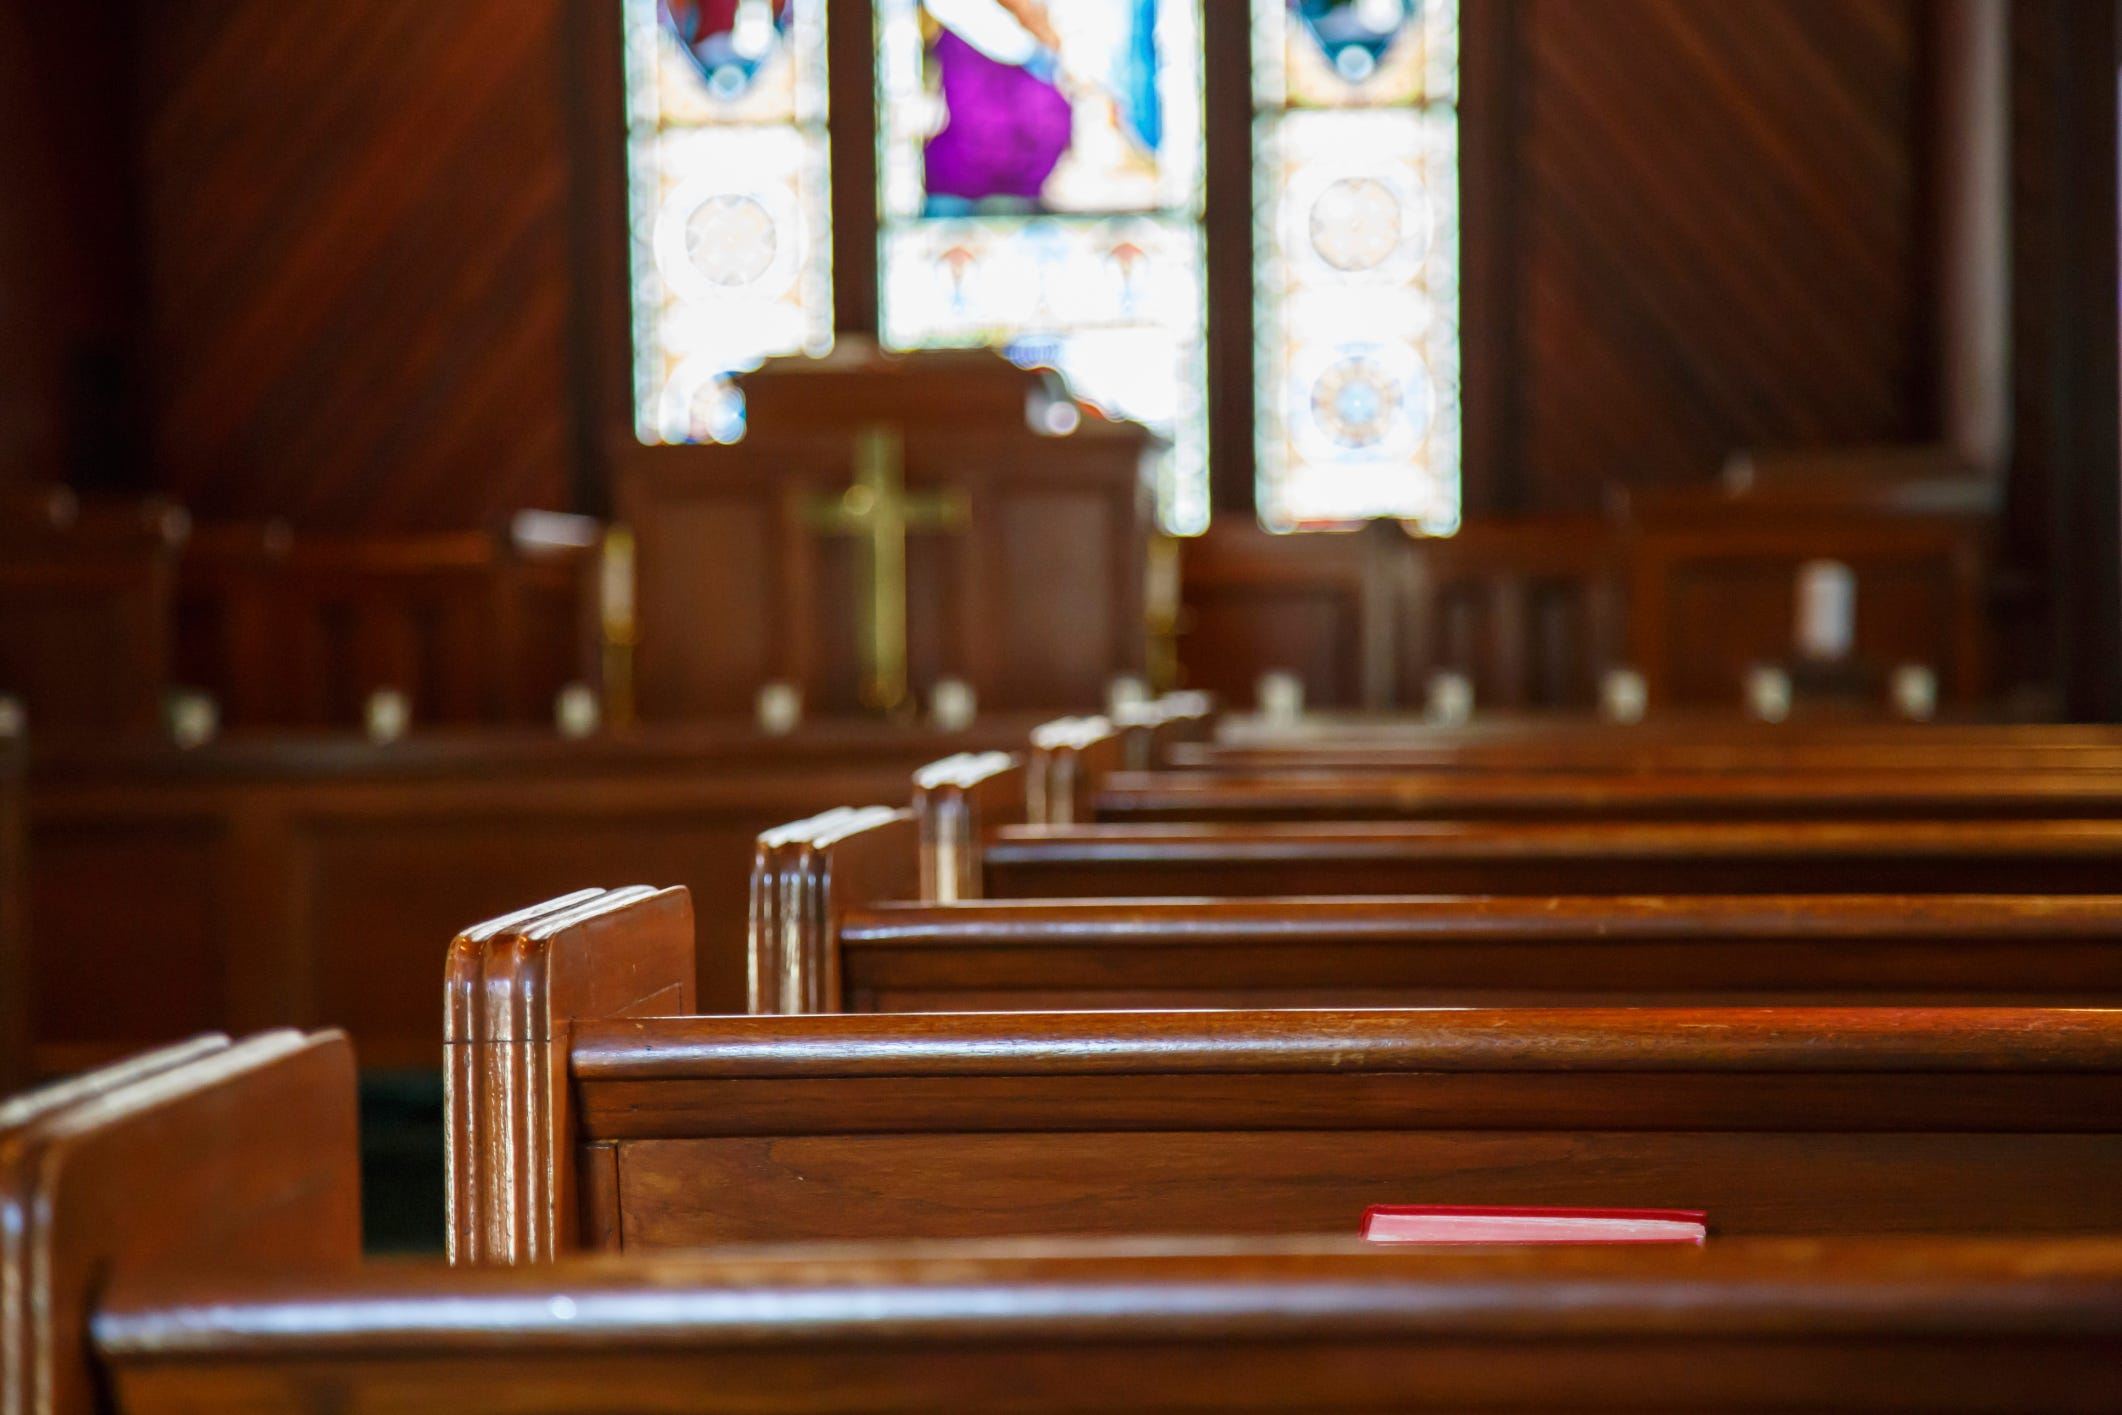 Wisconsin evangelical lutheran synod homosexual marriage